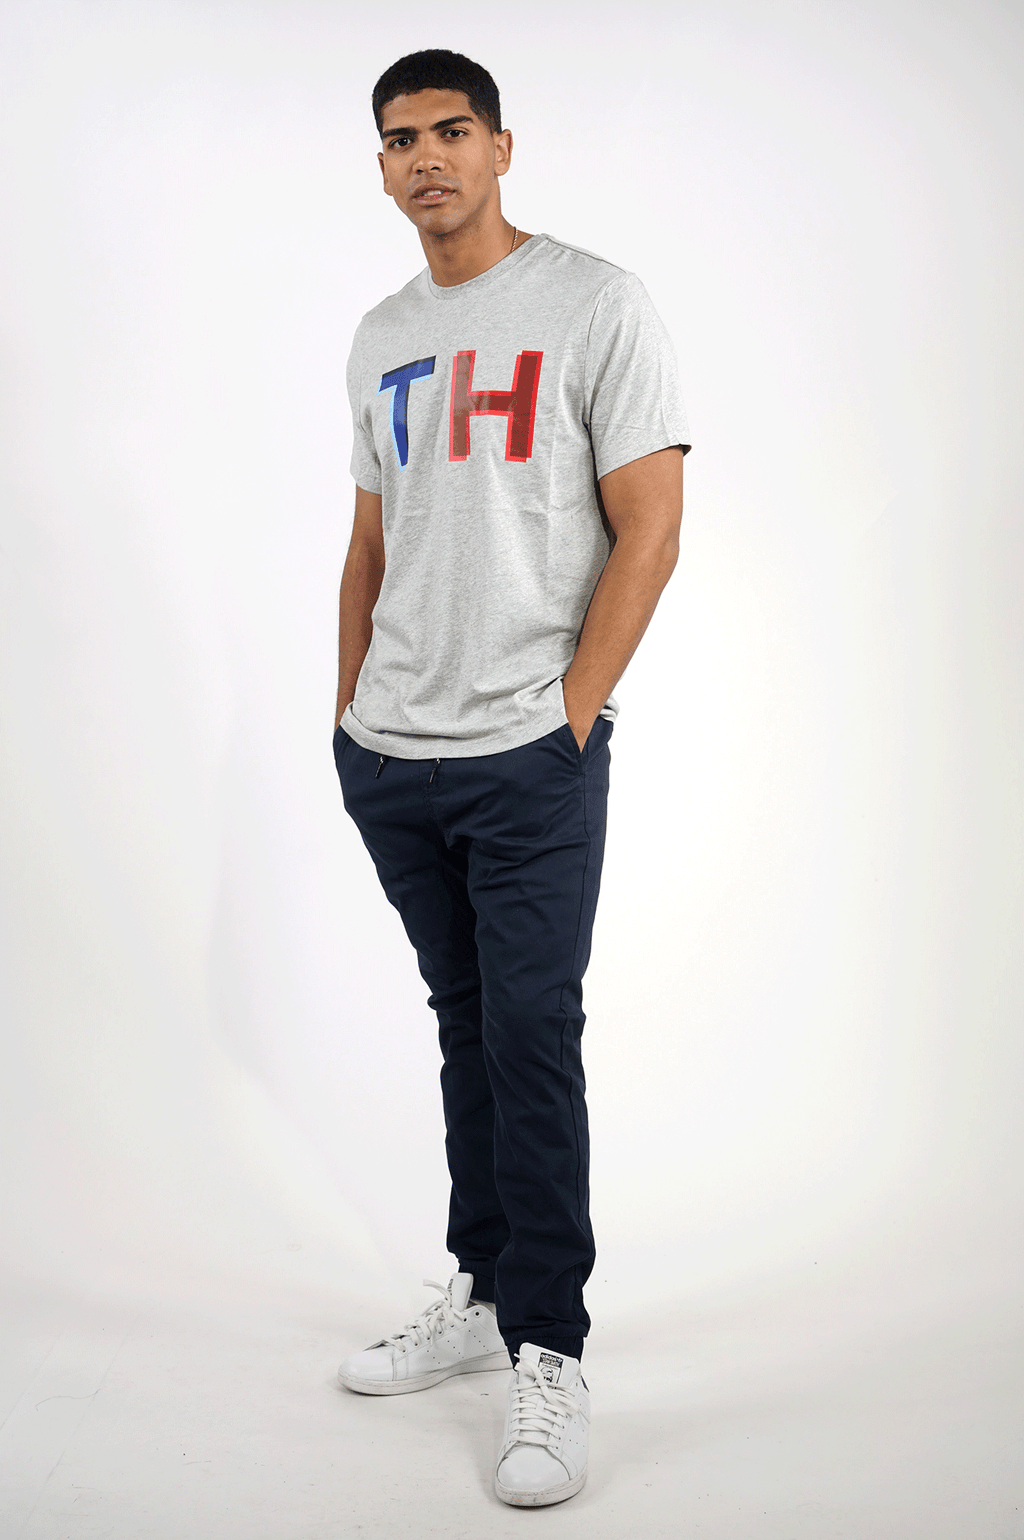 TOMMY HILFIGER SPORTSWEAR MENS GRAPHIC TEE